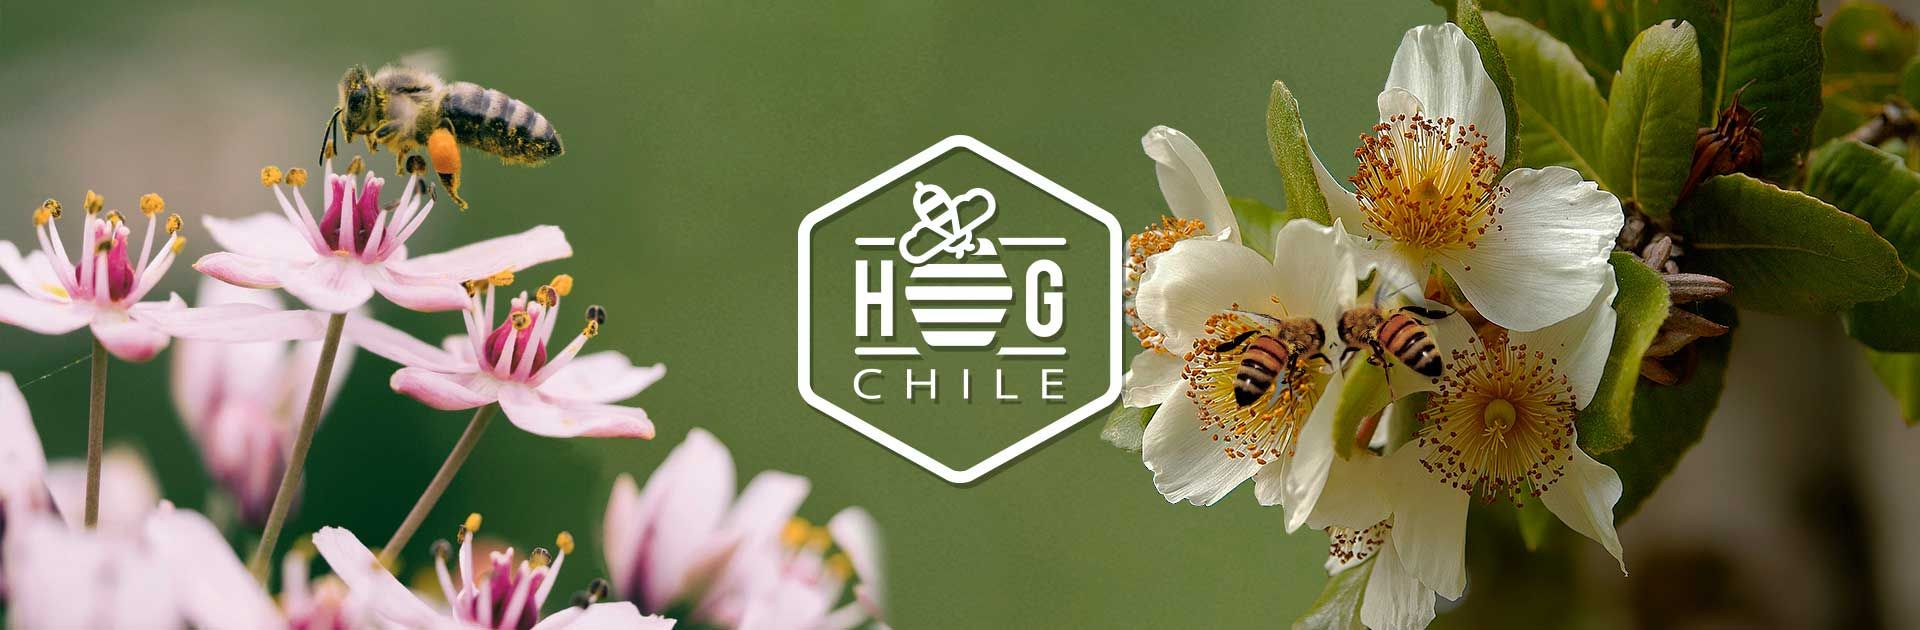 honey group chile